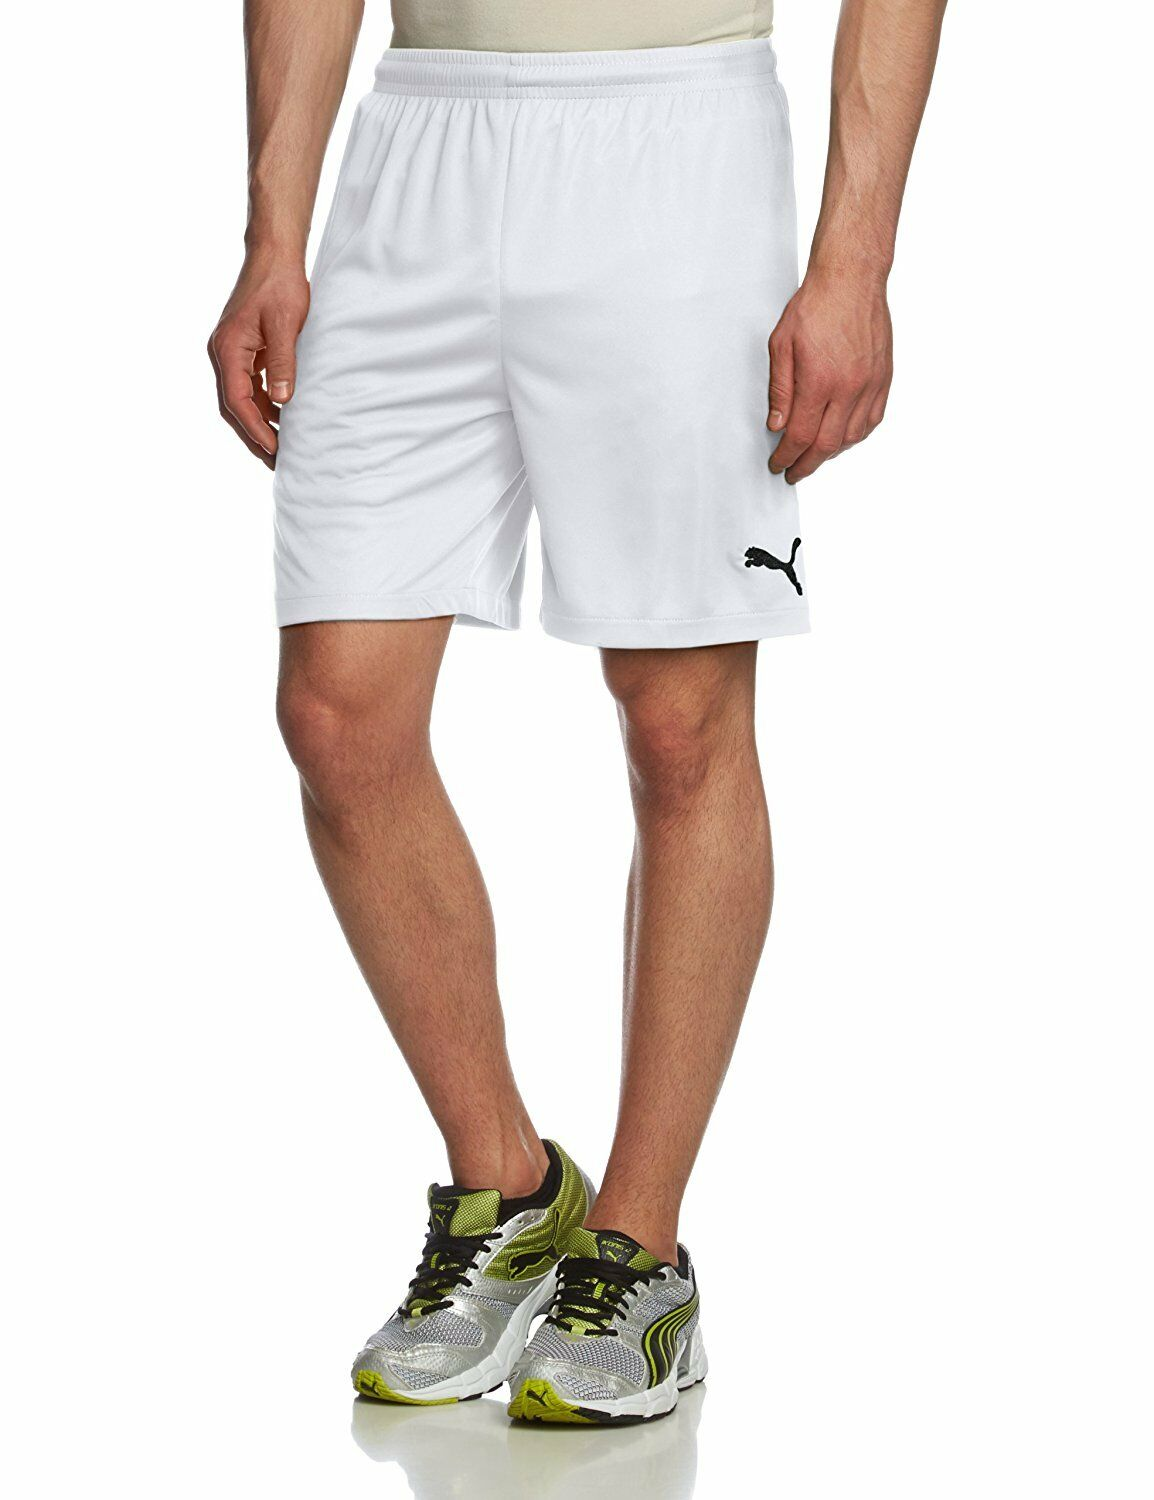 Détails sur Puma Velize Hommes Formation Shorts Sports Gym Football Shorts De Course afficher le titre d'origine